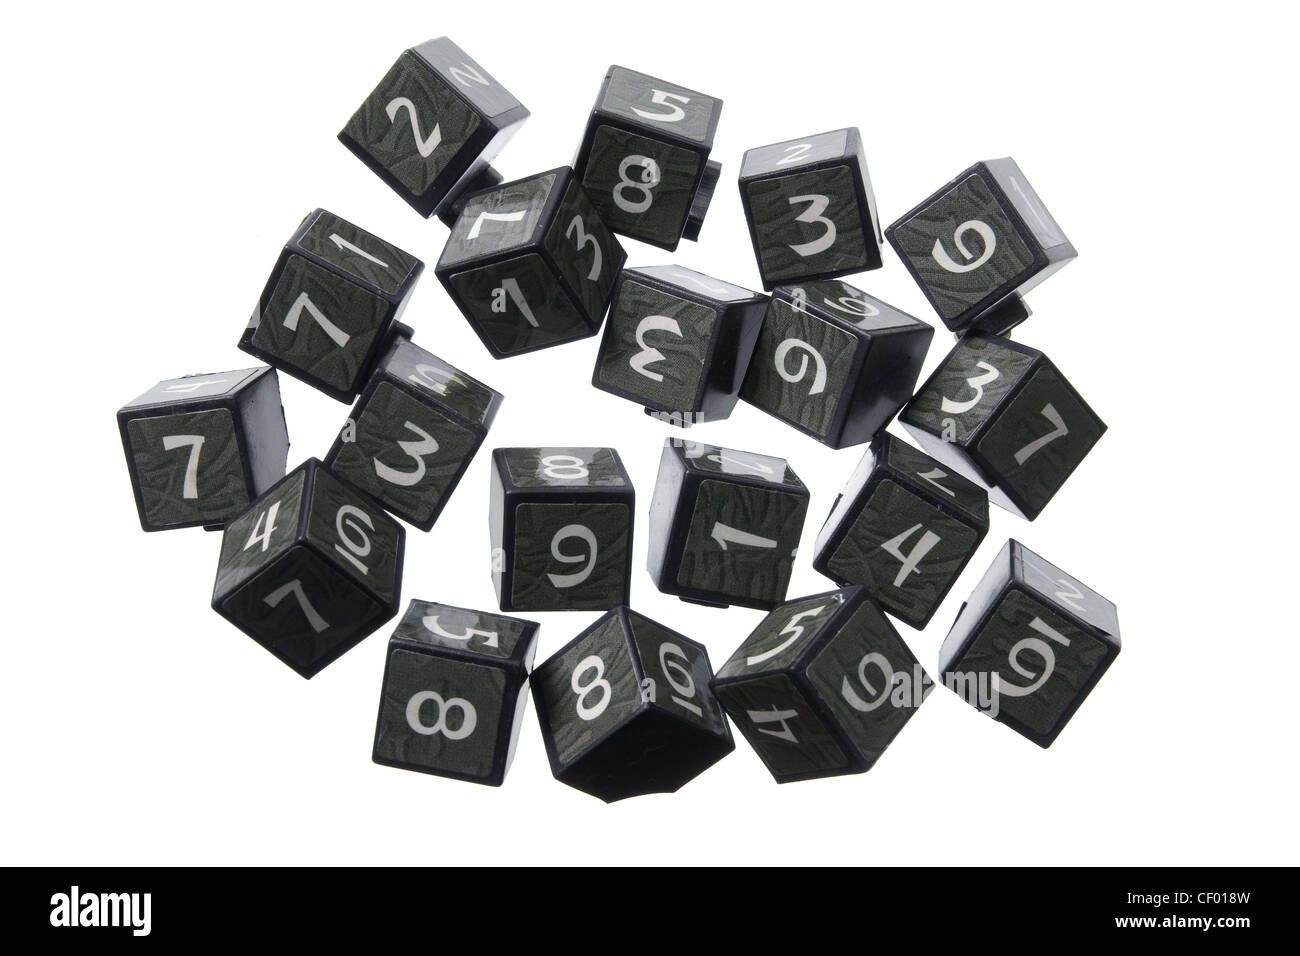 Number Cubes - Stock Image